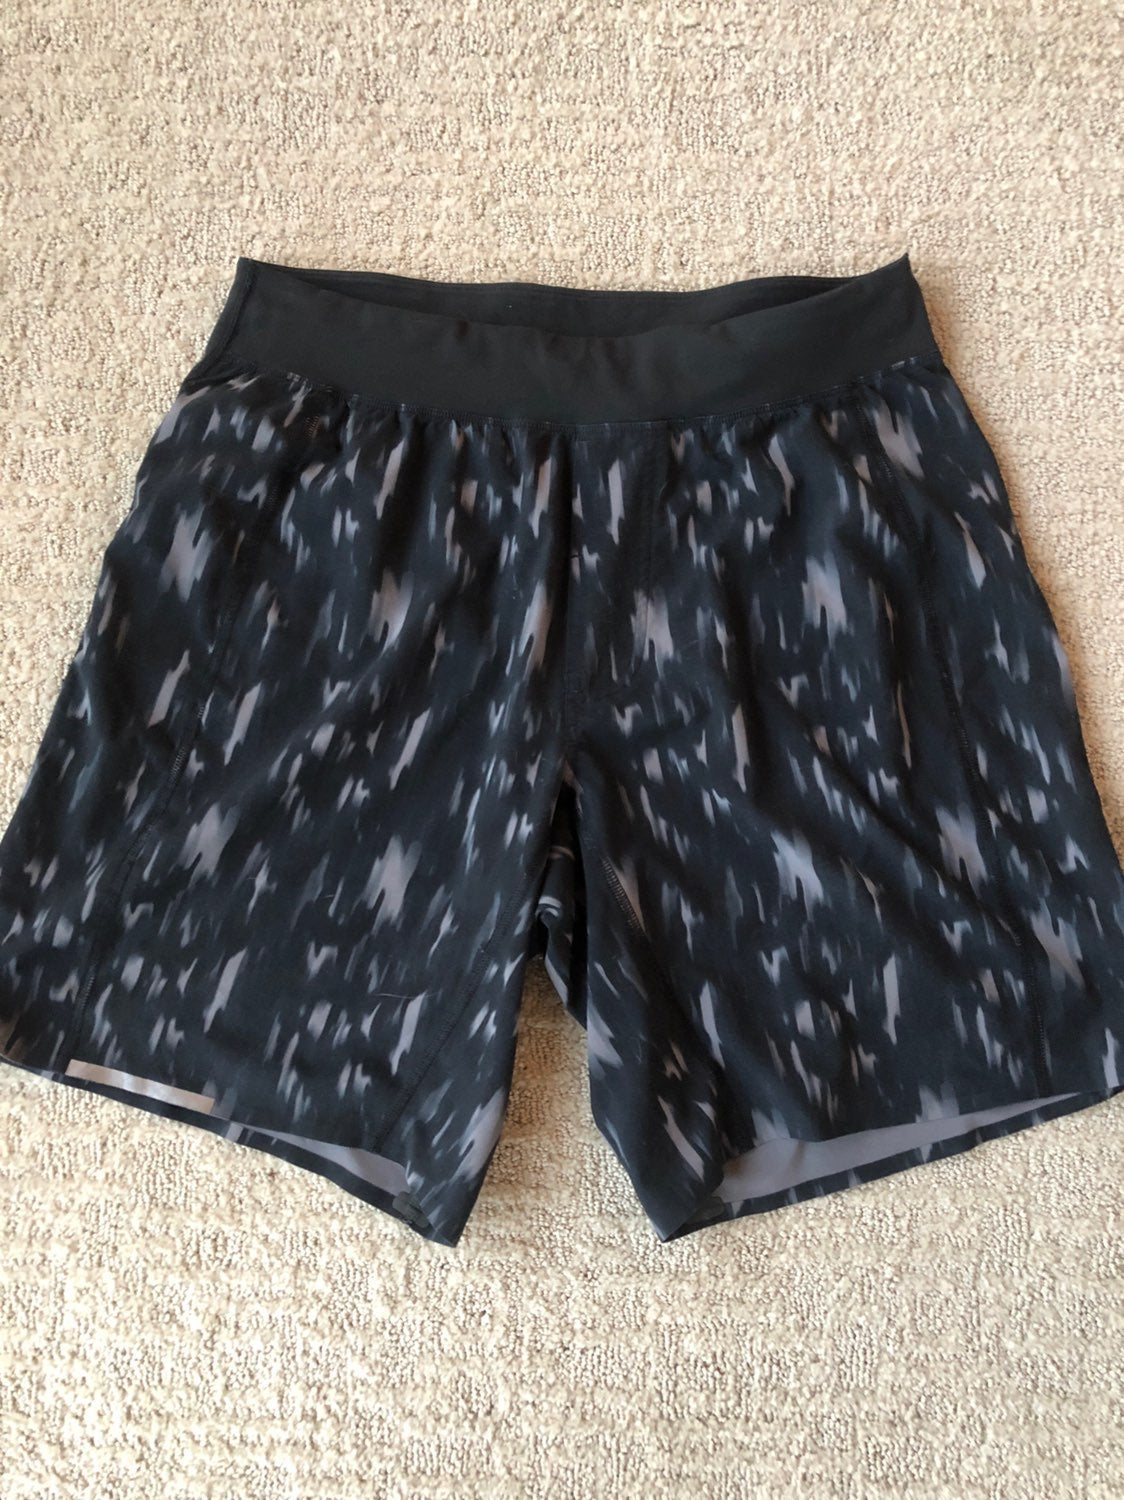 Lulemon shorts. Medium.